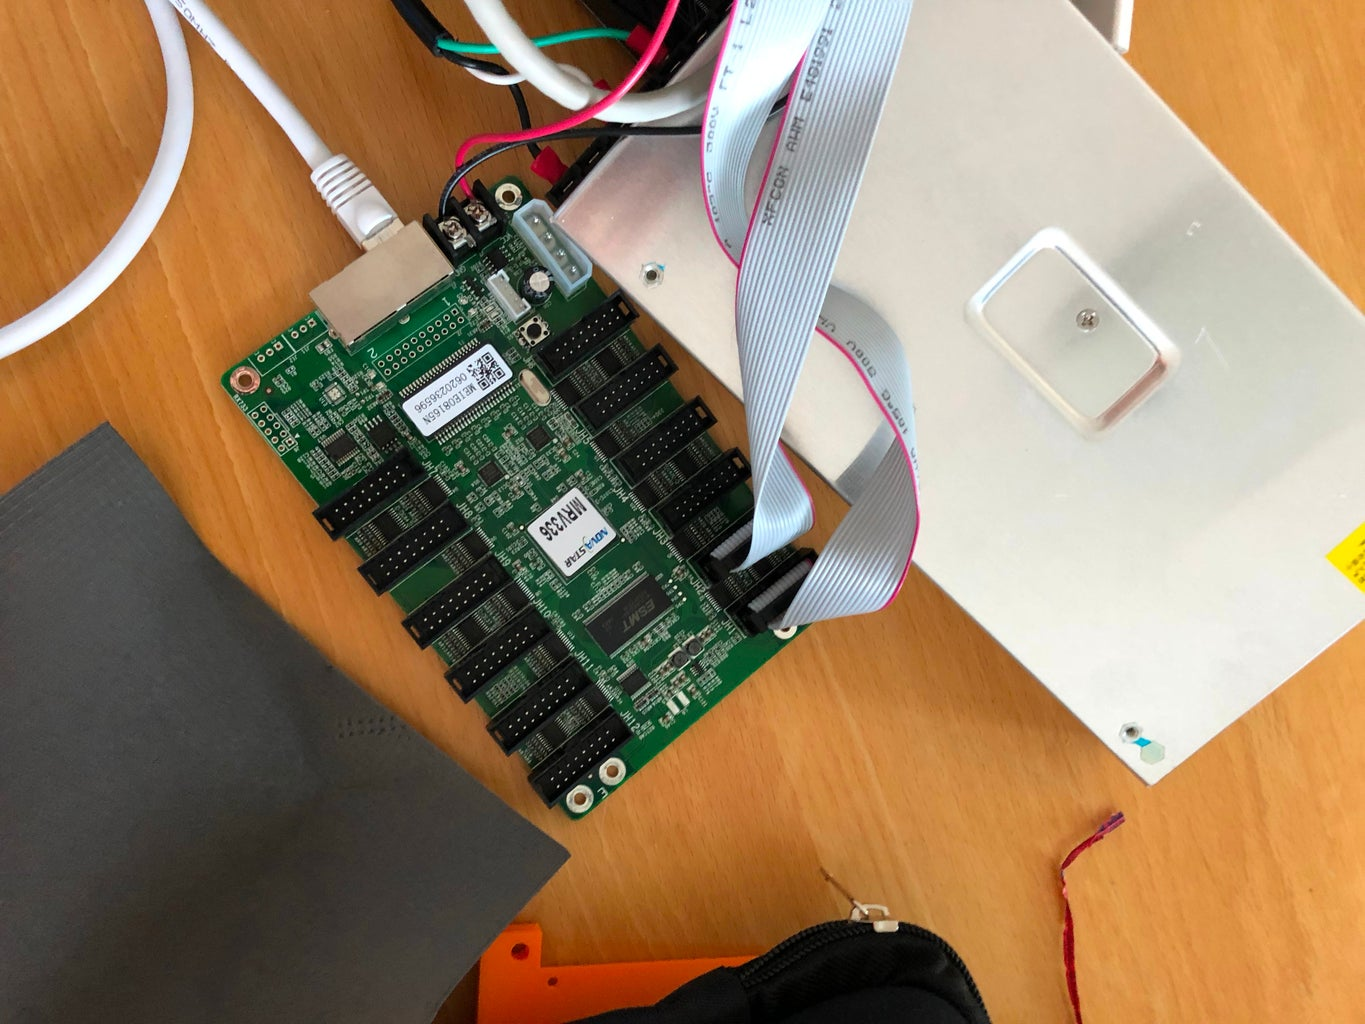 Configuring the Receiver Card and Sender